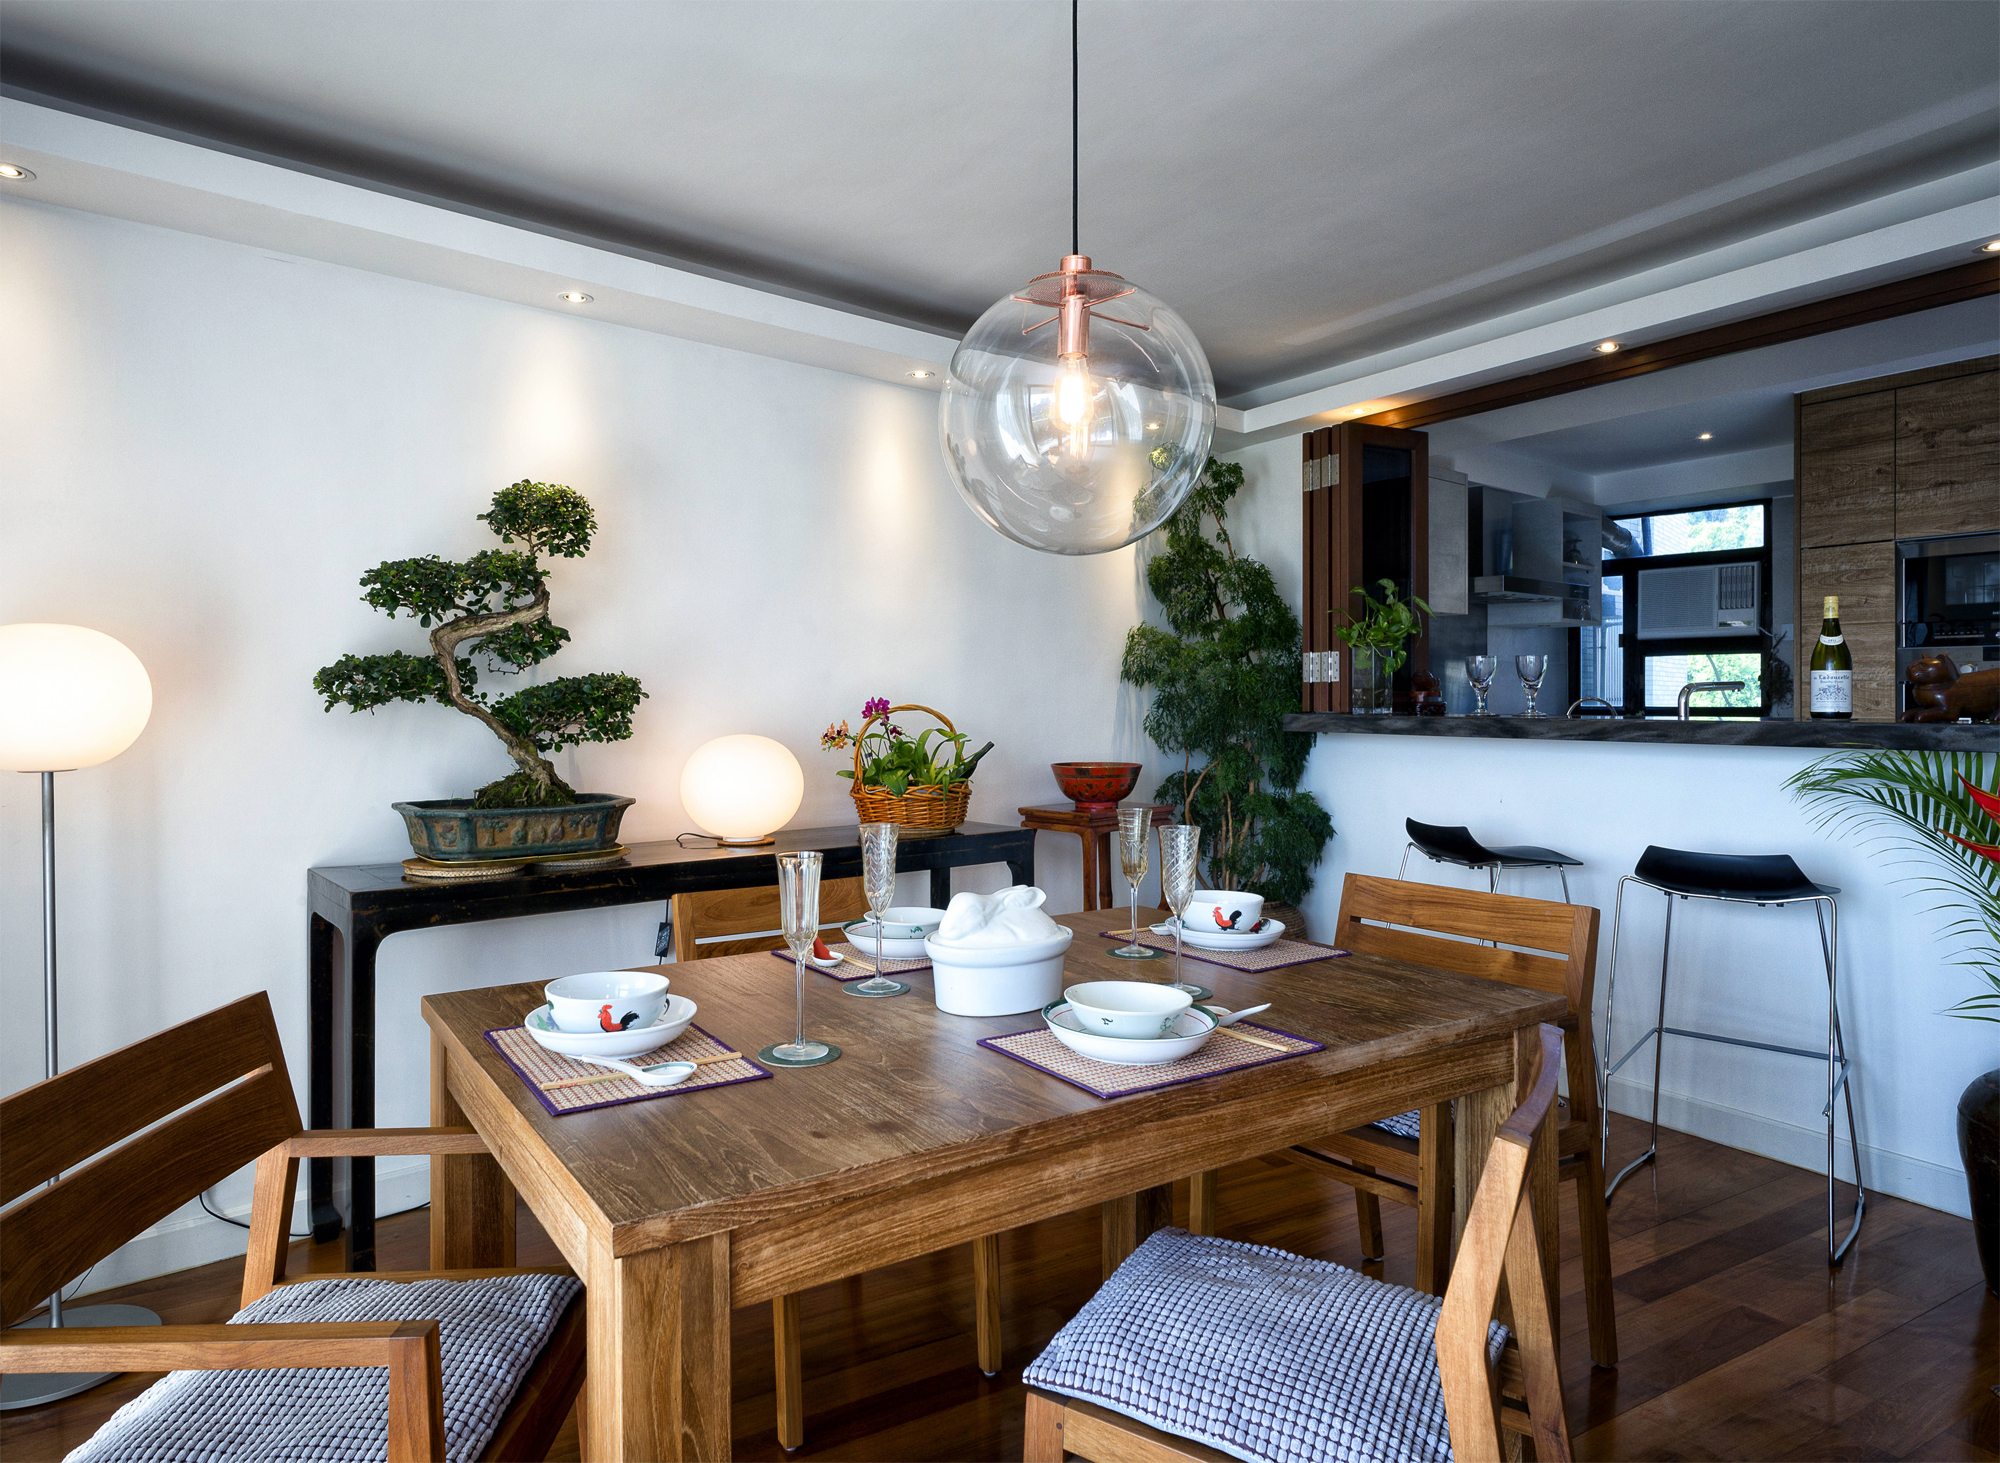 Dining Area The Extendable Table HK16450 Came From Tree And Chairs HK3000 HK3400 With Arms Ovo Home 16 Queens Road East Wan Chai